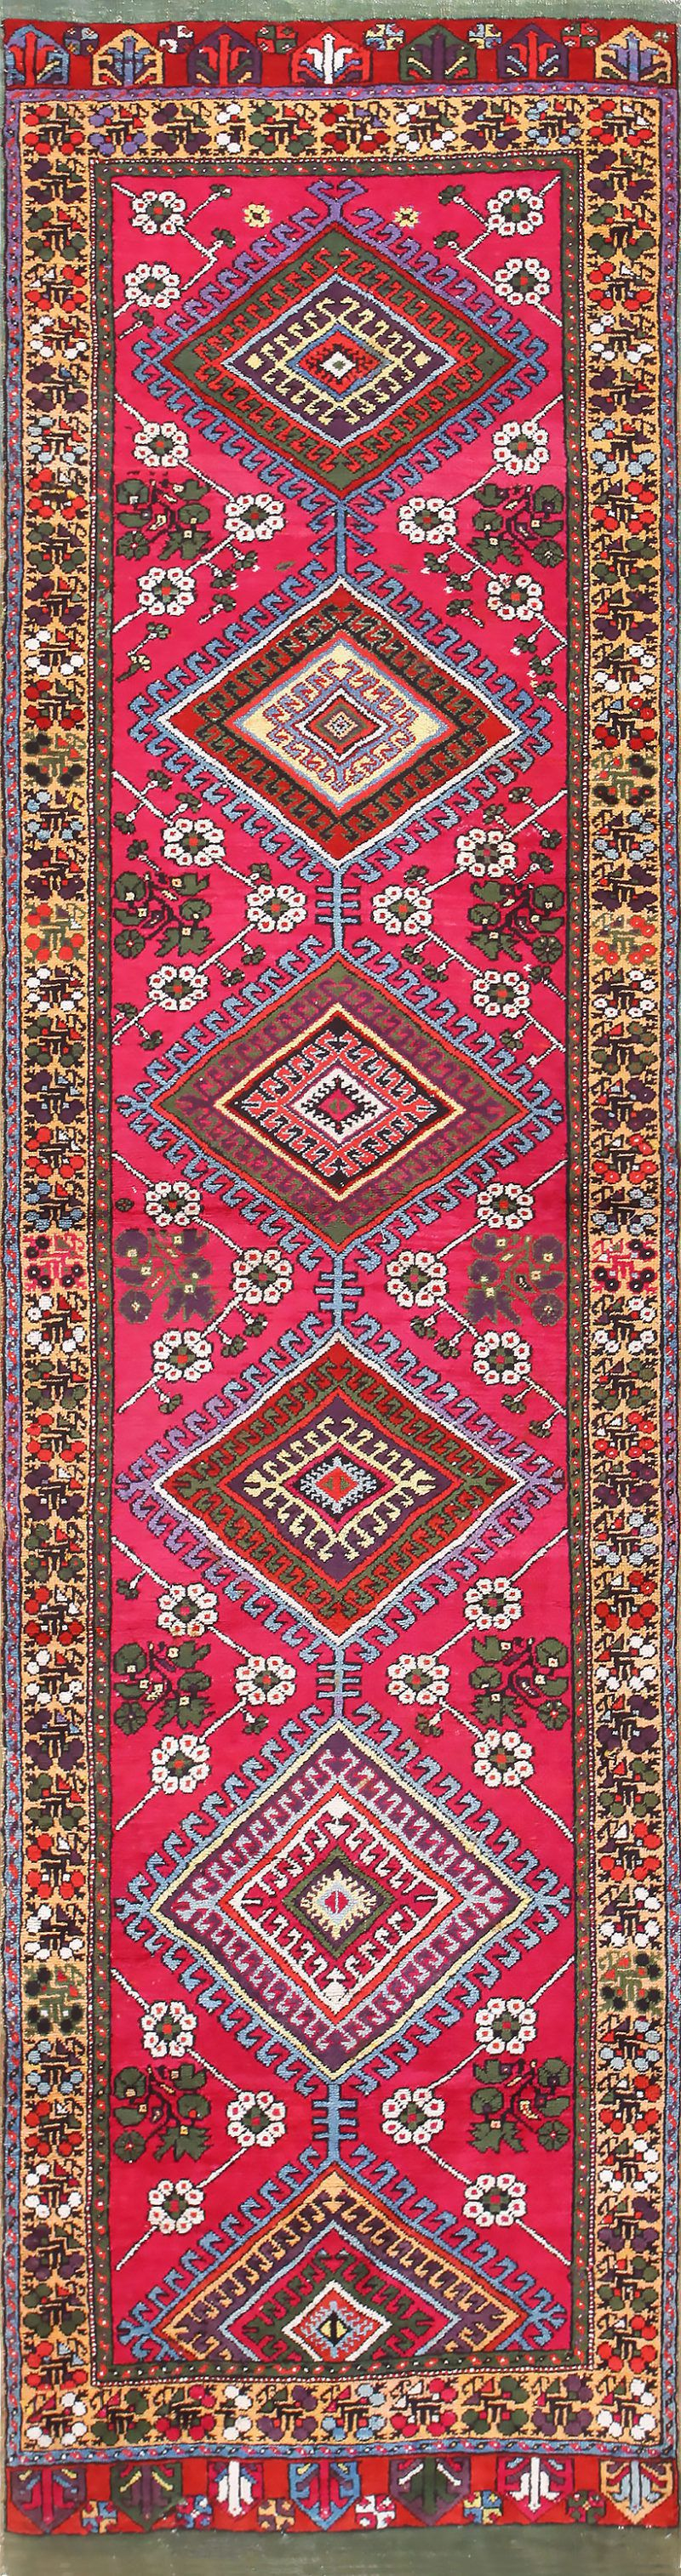 tribal antique turkish kirshehir runner rug 48883 nazmiyal OZVLJPM